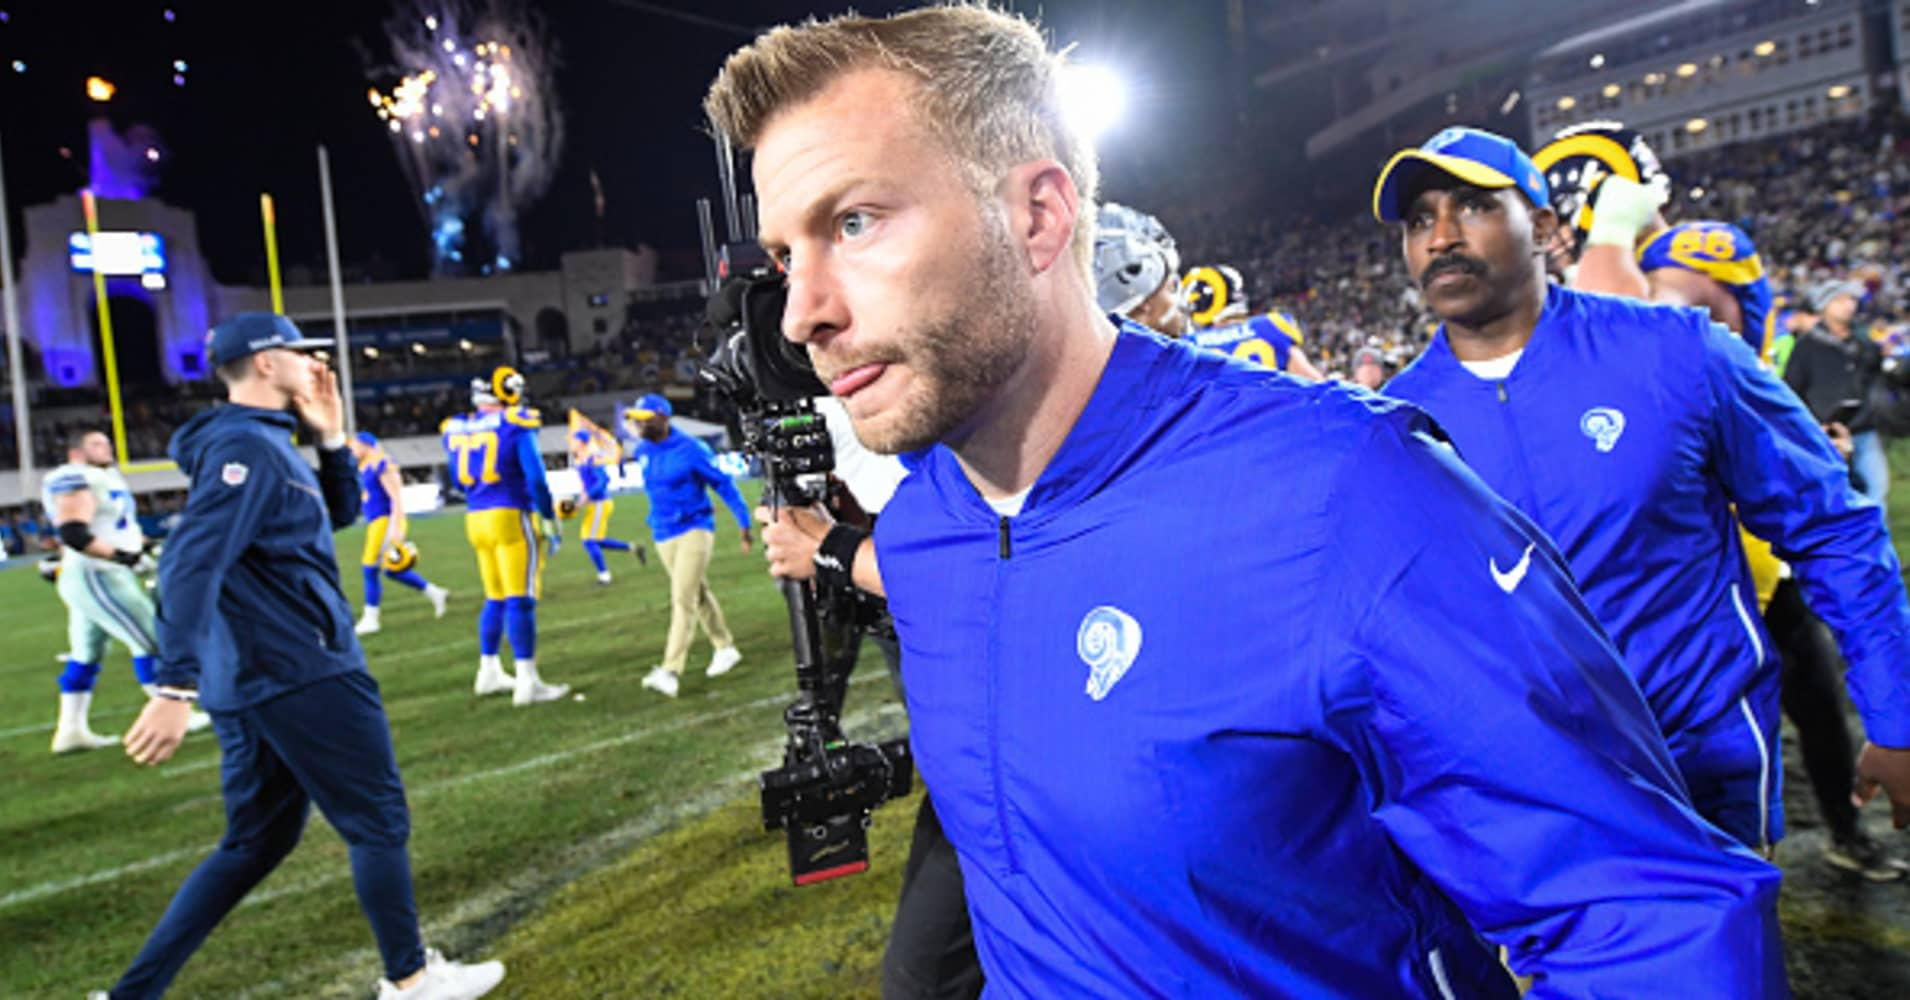 Head coach Sean McVay of the Los Angeles Rams leaves the field after winning the NFC Divisional Round playoff game against the Dallas Cowboys at Los Angeles Memorial Coliseum on January 12, 2019.